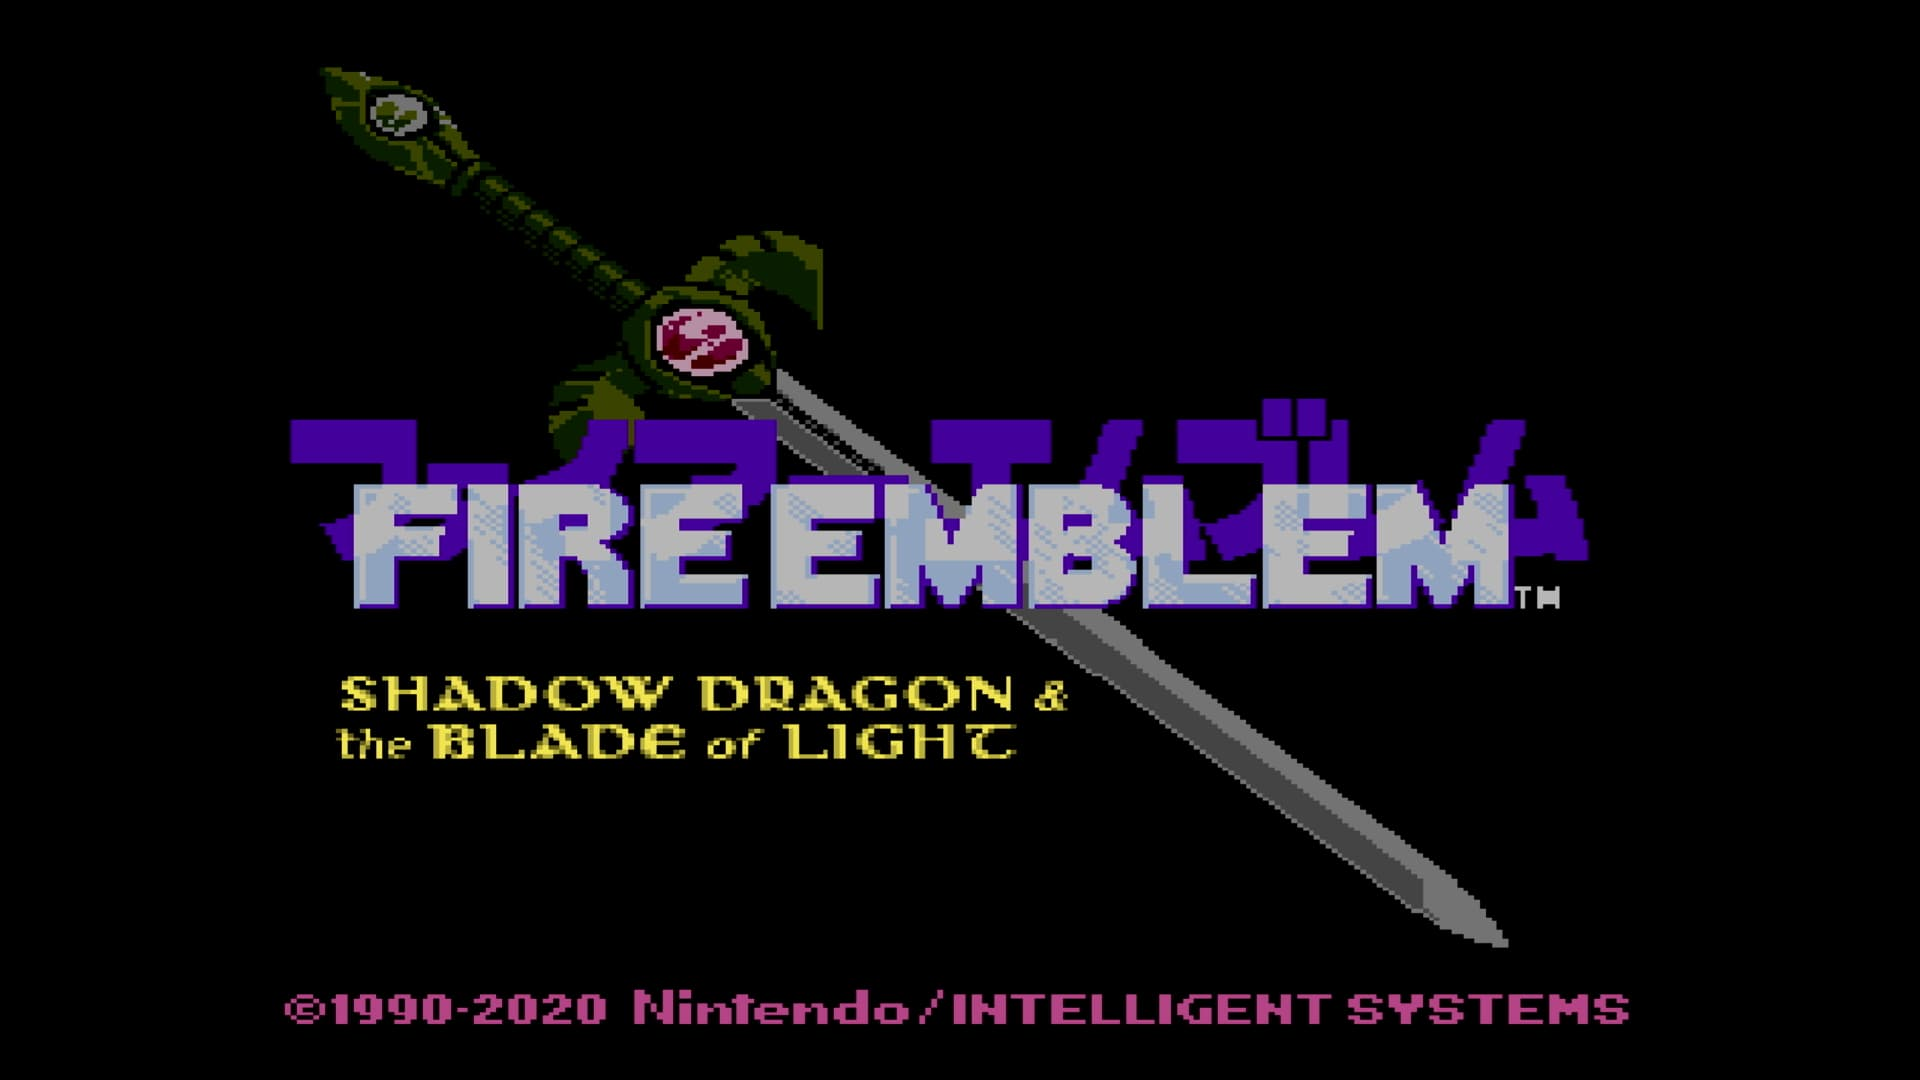 Fire Emblem Shadow Dragon & Blade of Light